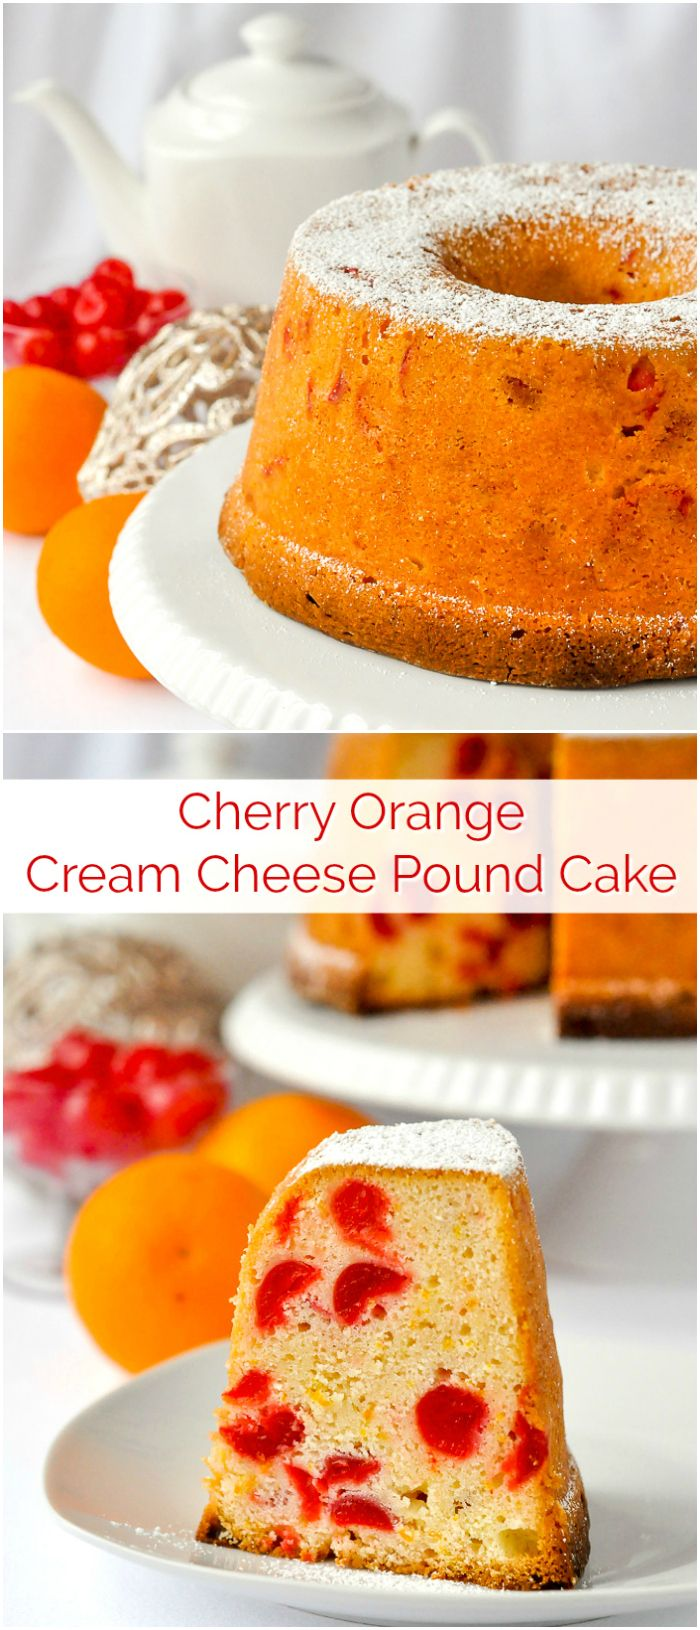 Maraschino Cherry Cream Cheese Pound Cake